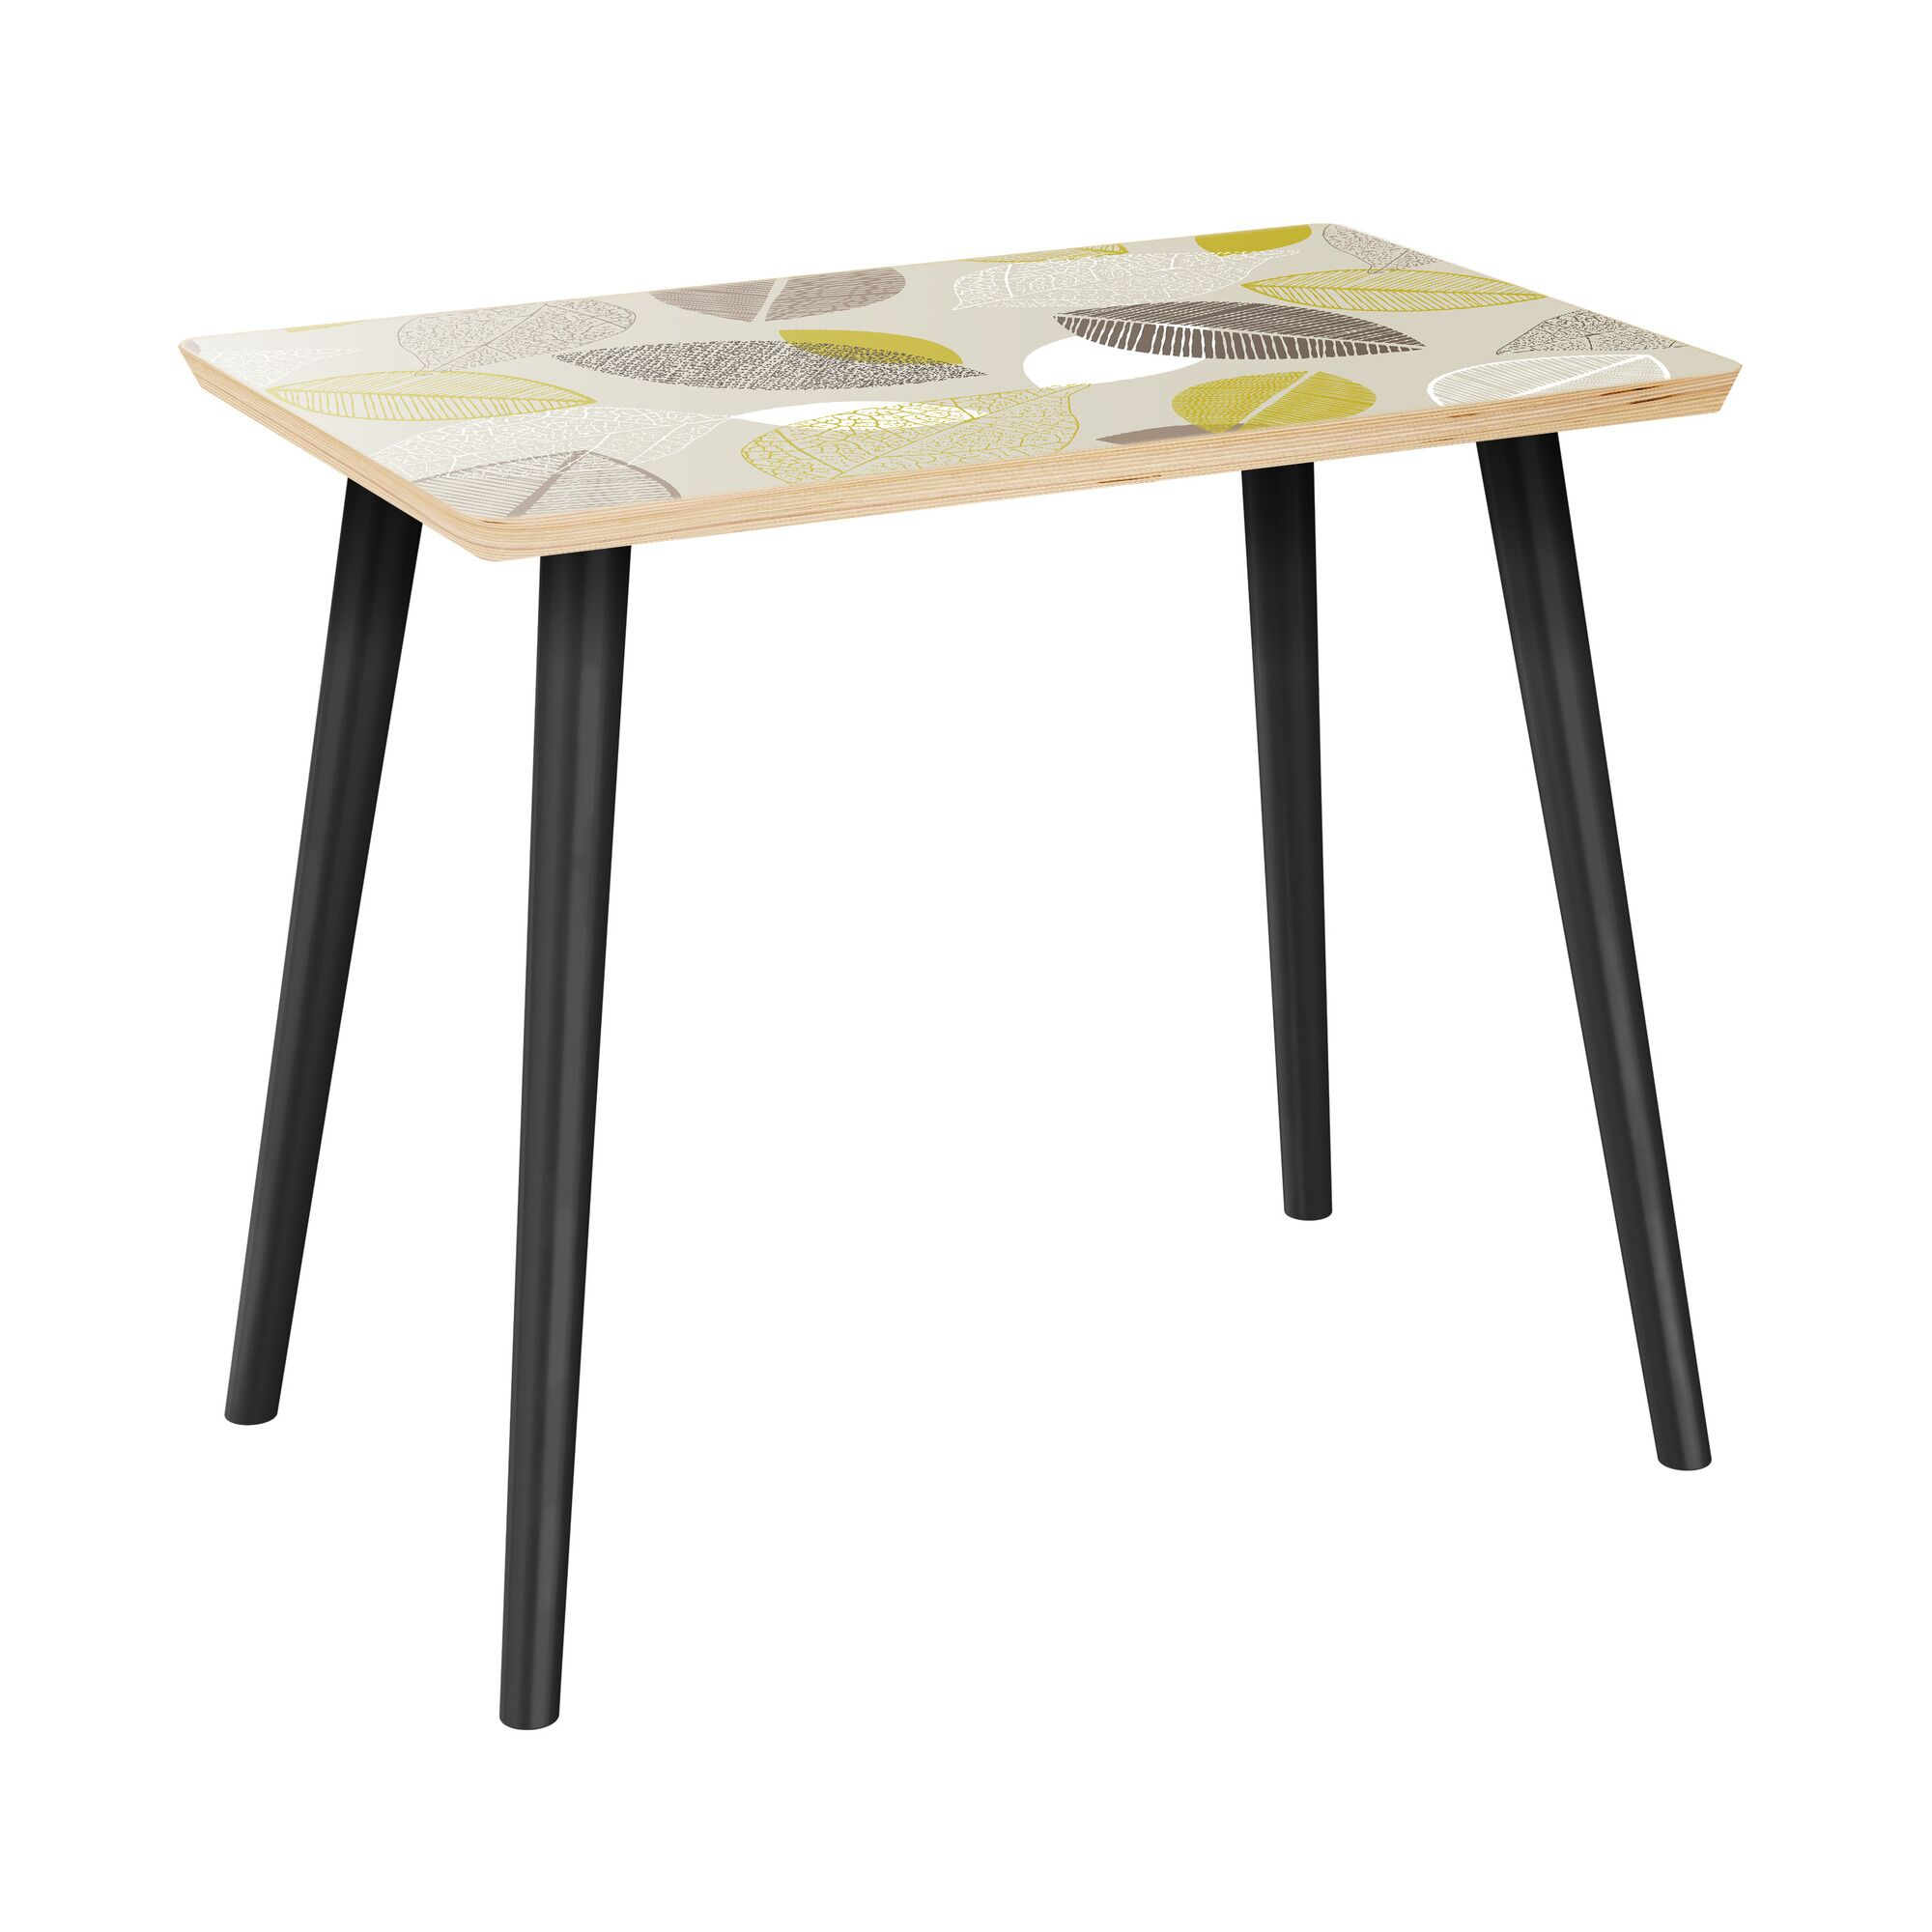 Jeana End Table Table Top Boarder Color: Natural, Table Base Color: Black, Table Top Color: Pink